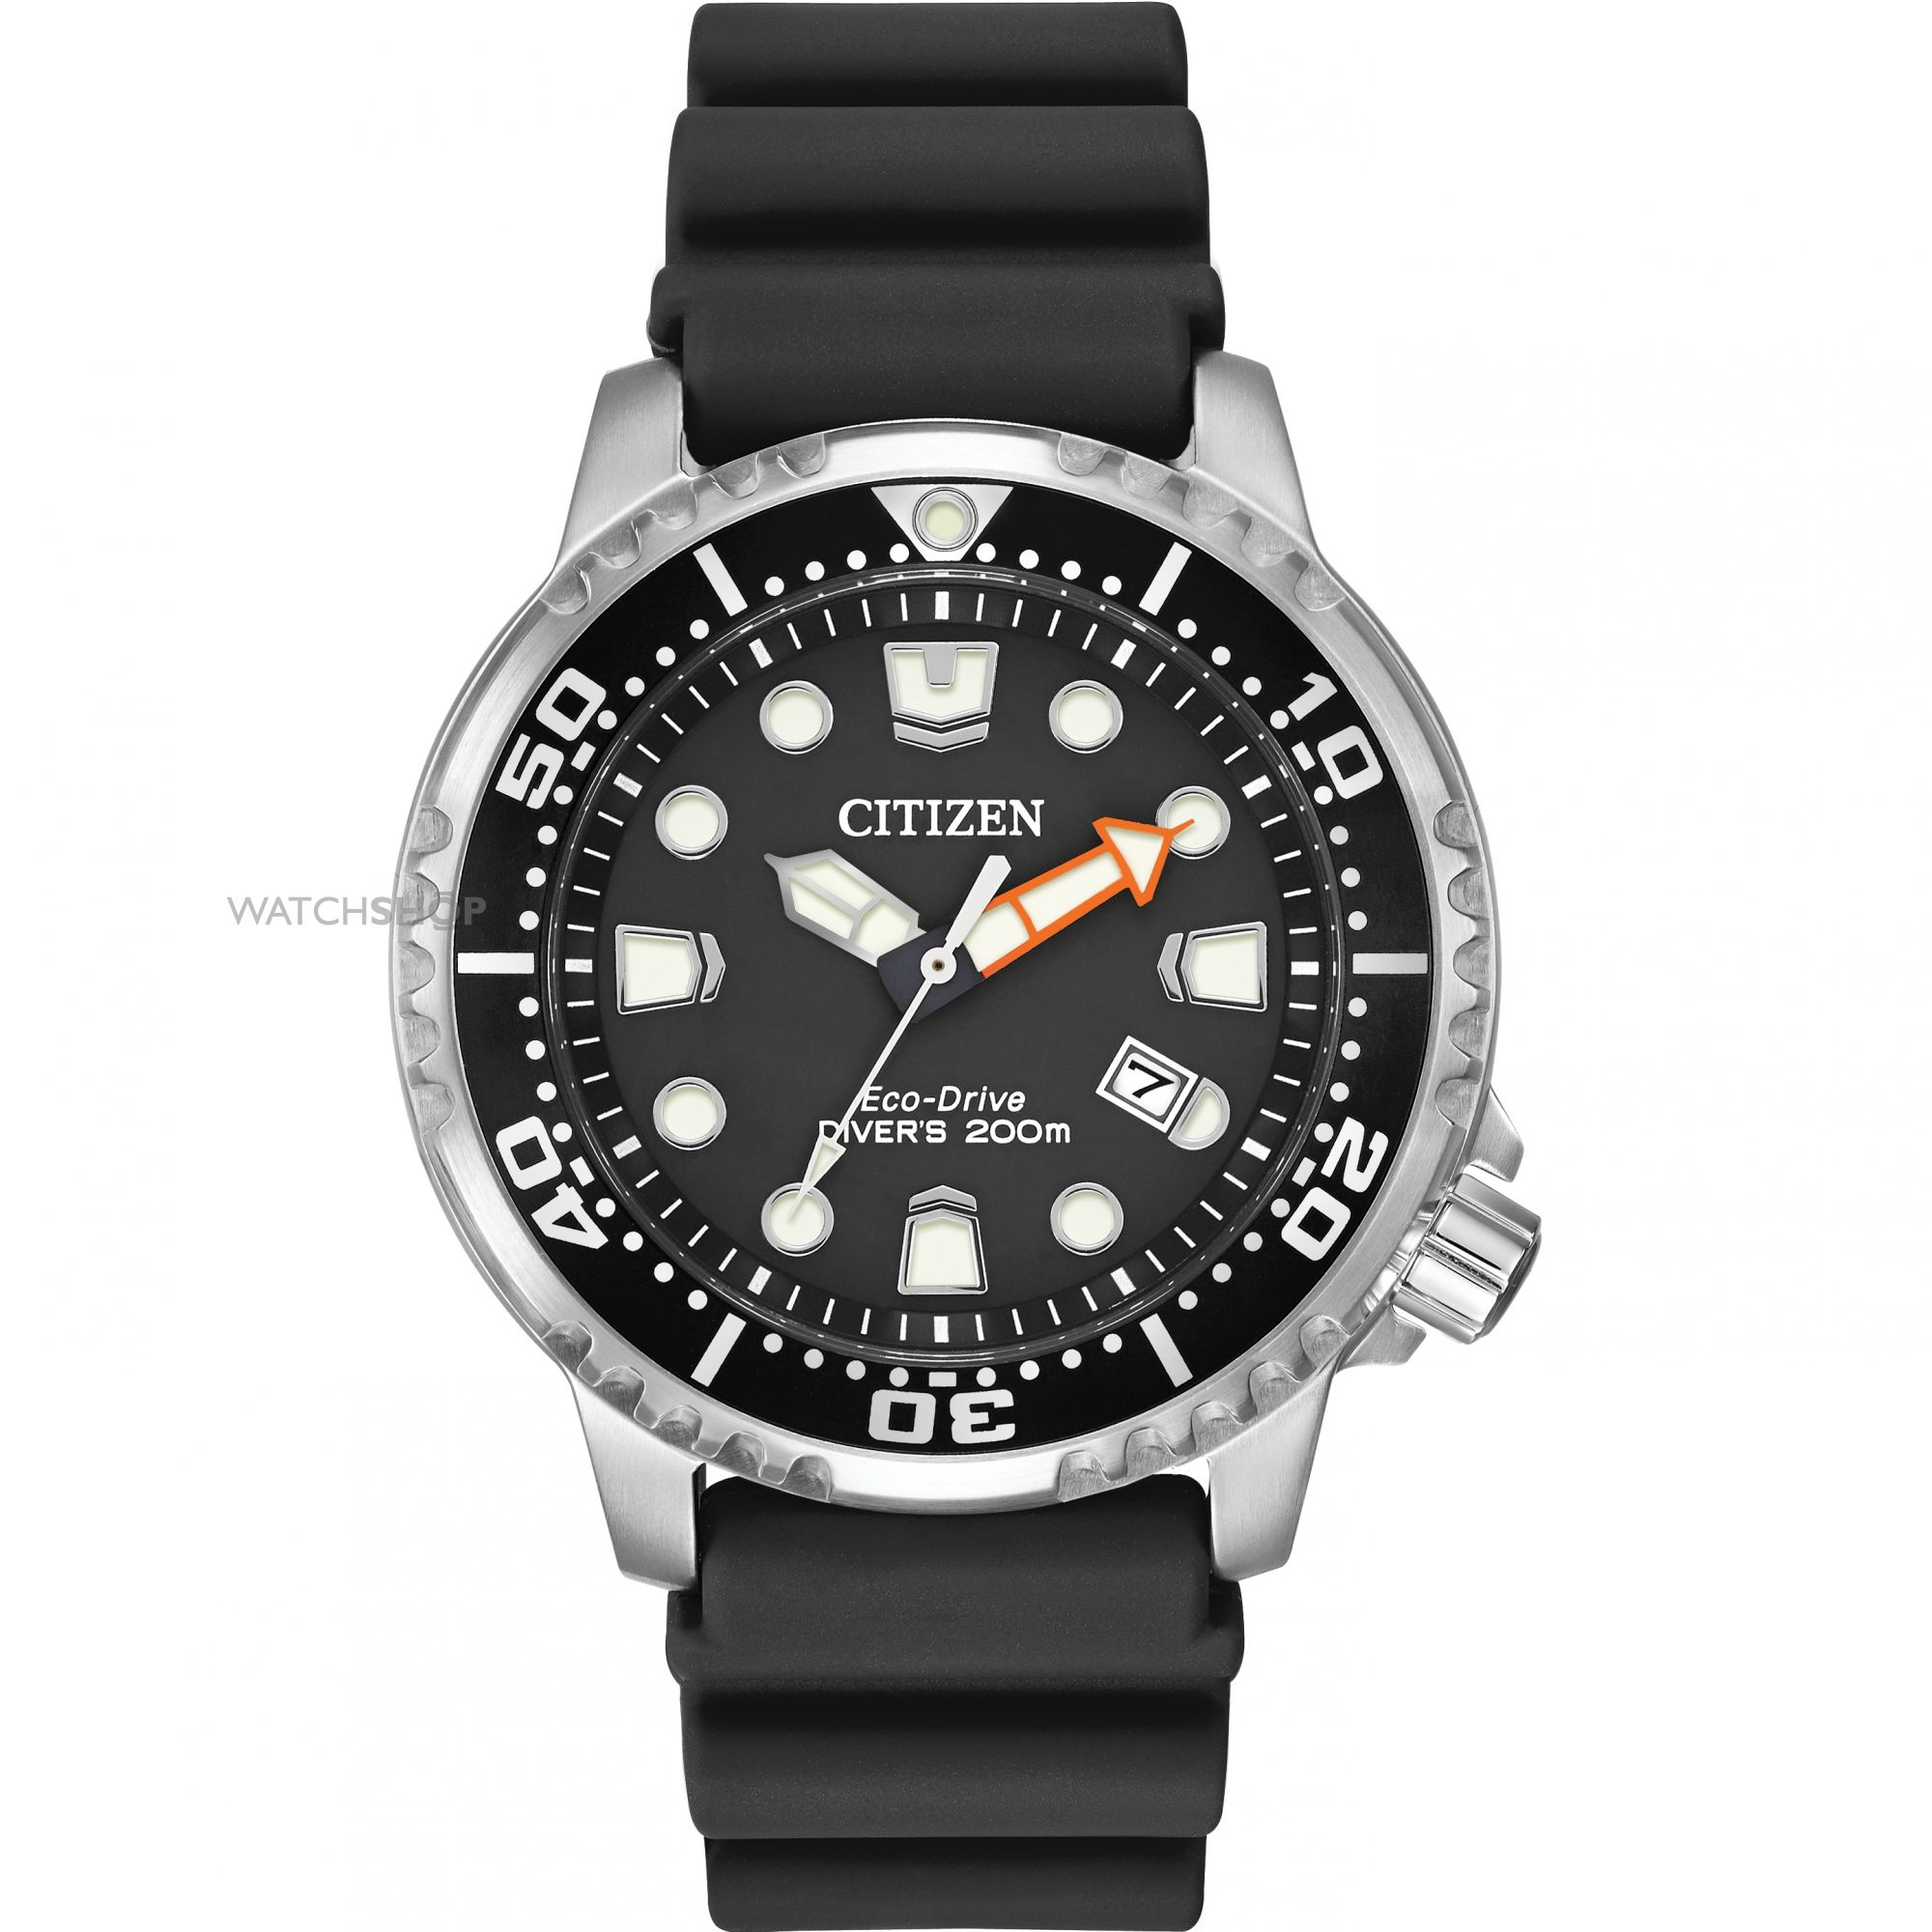 Promaster Divers Watch